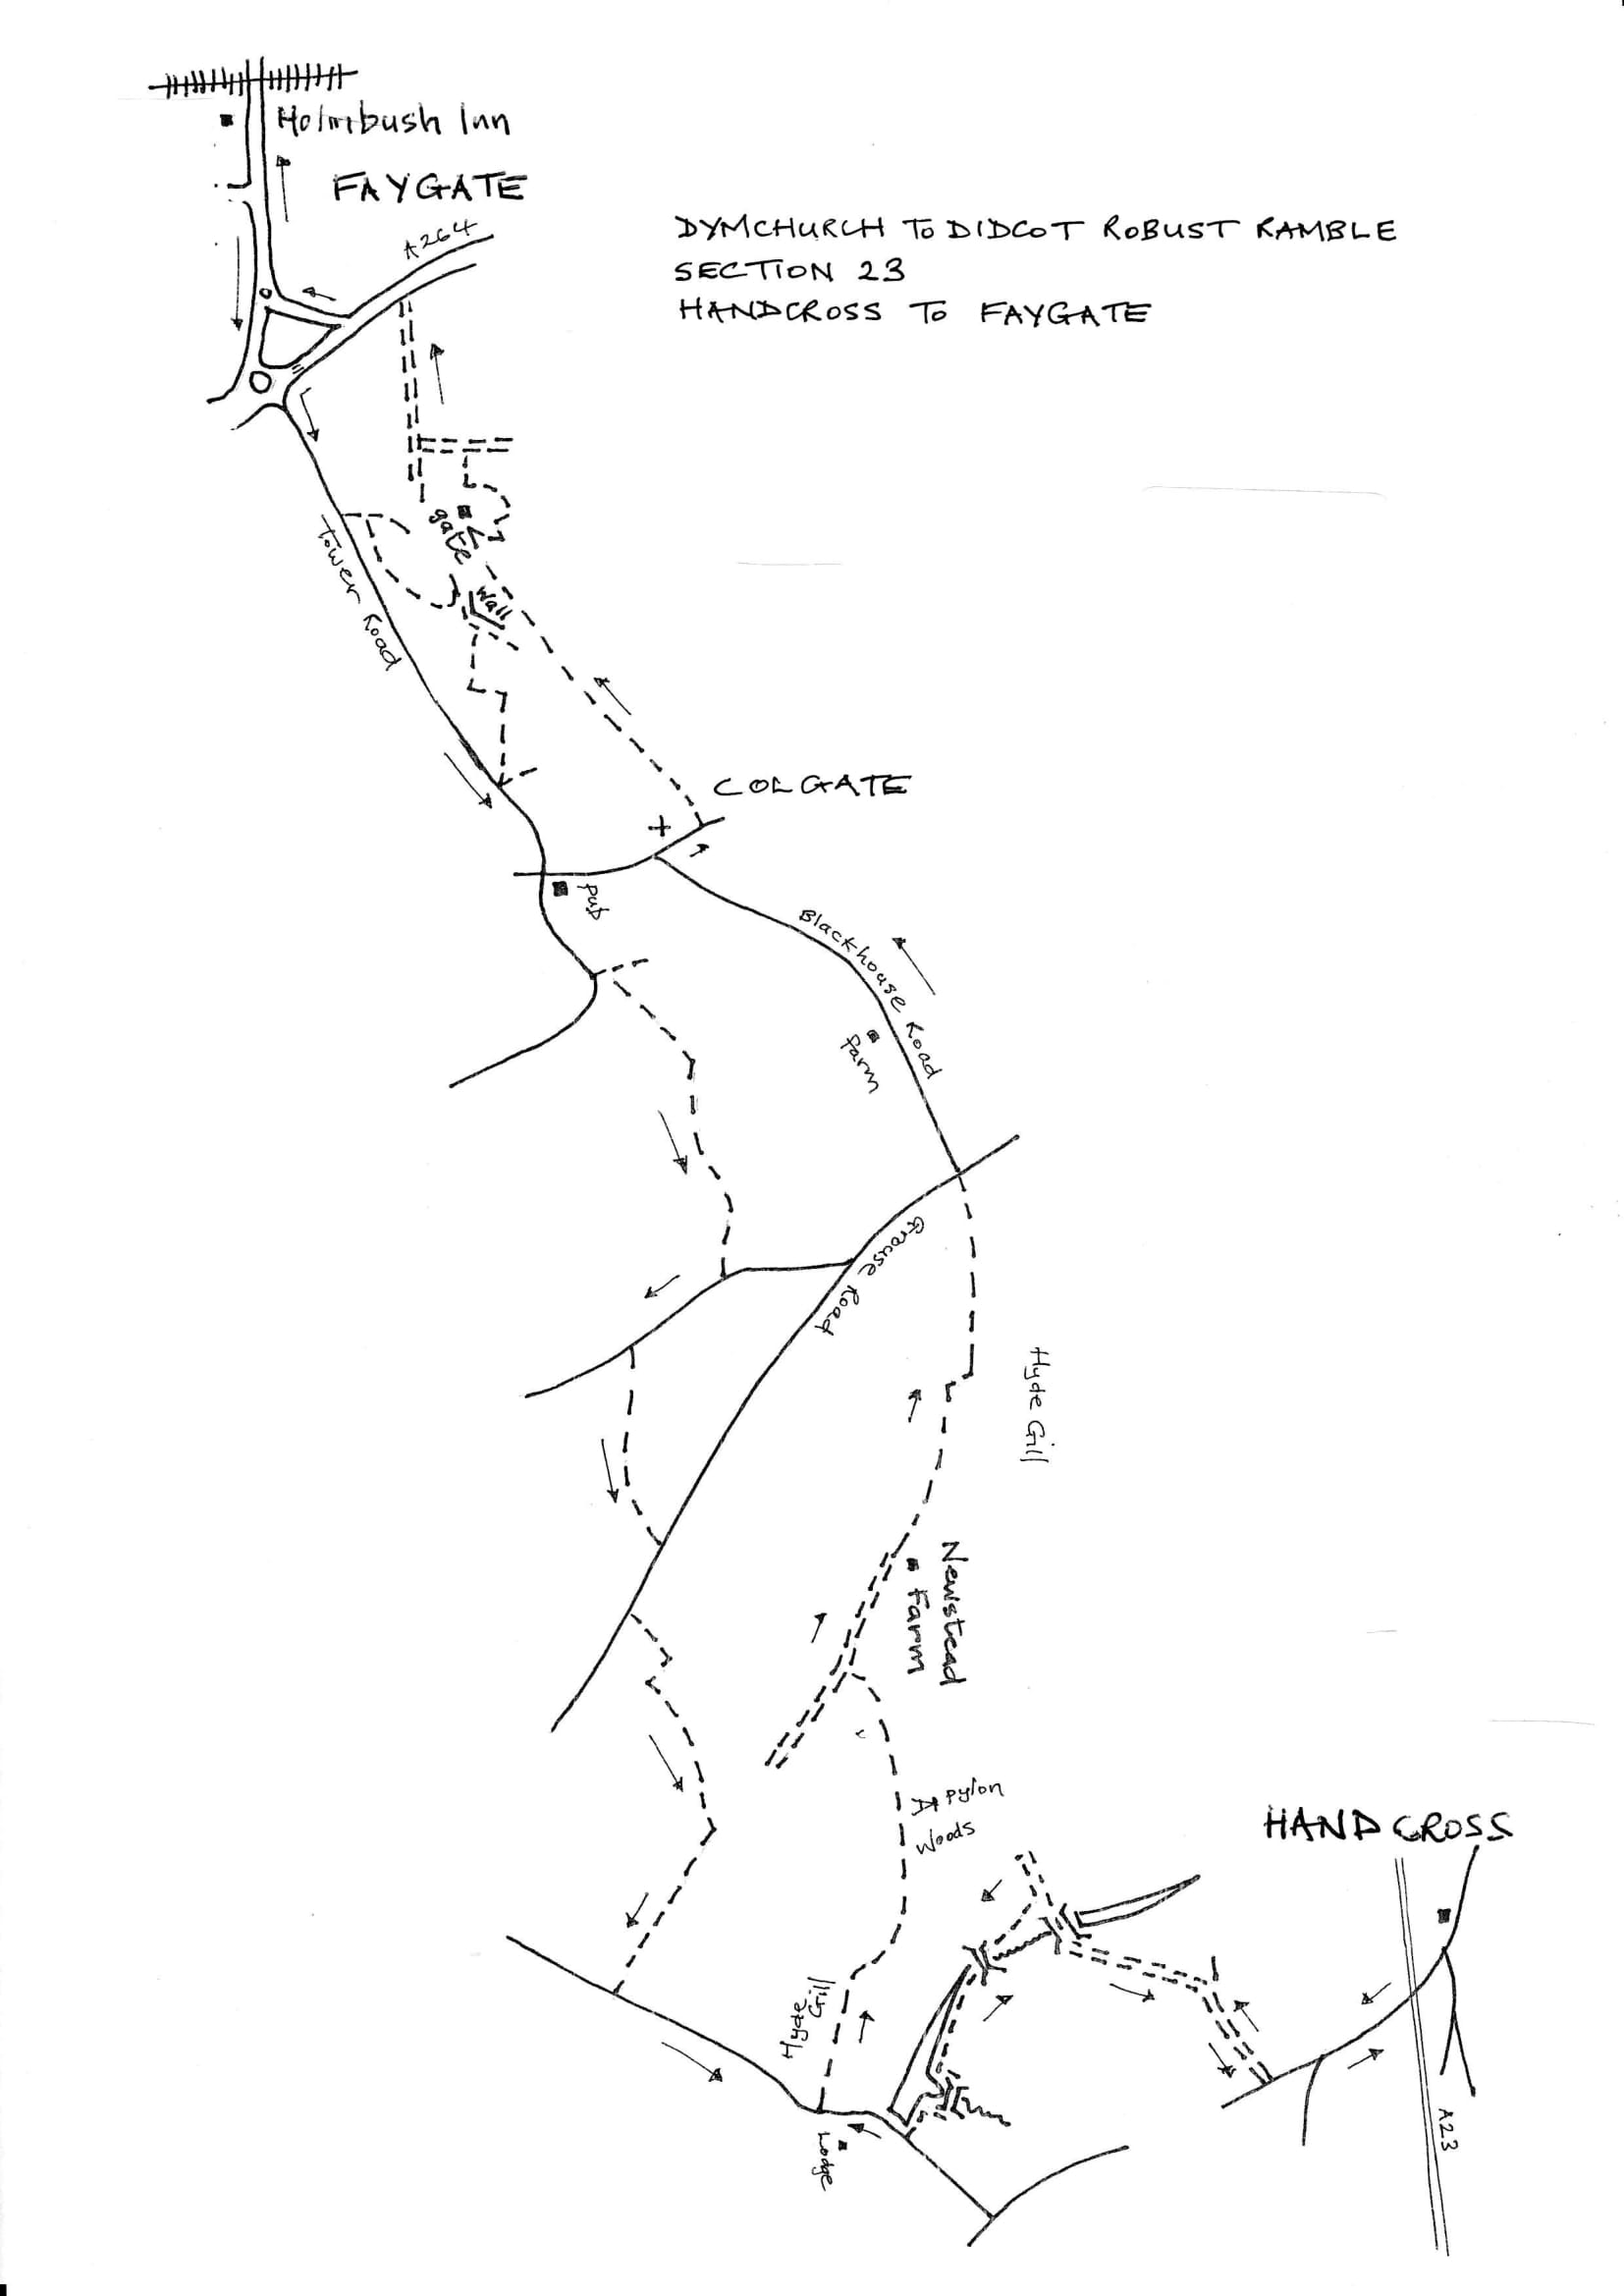 Map of Dymchurch To Didcot Robust Ramble: Section 23 Out